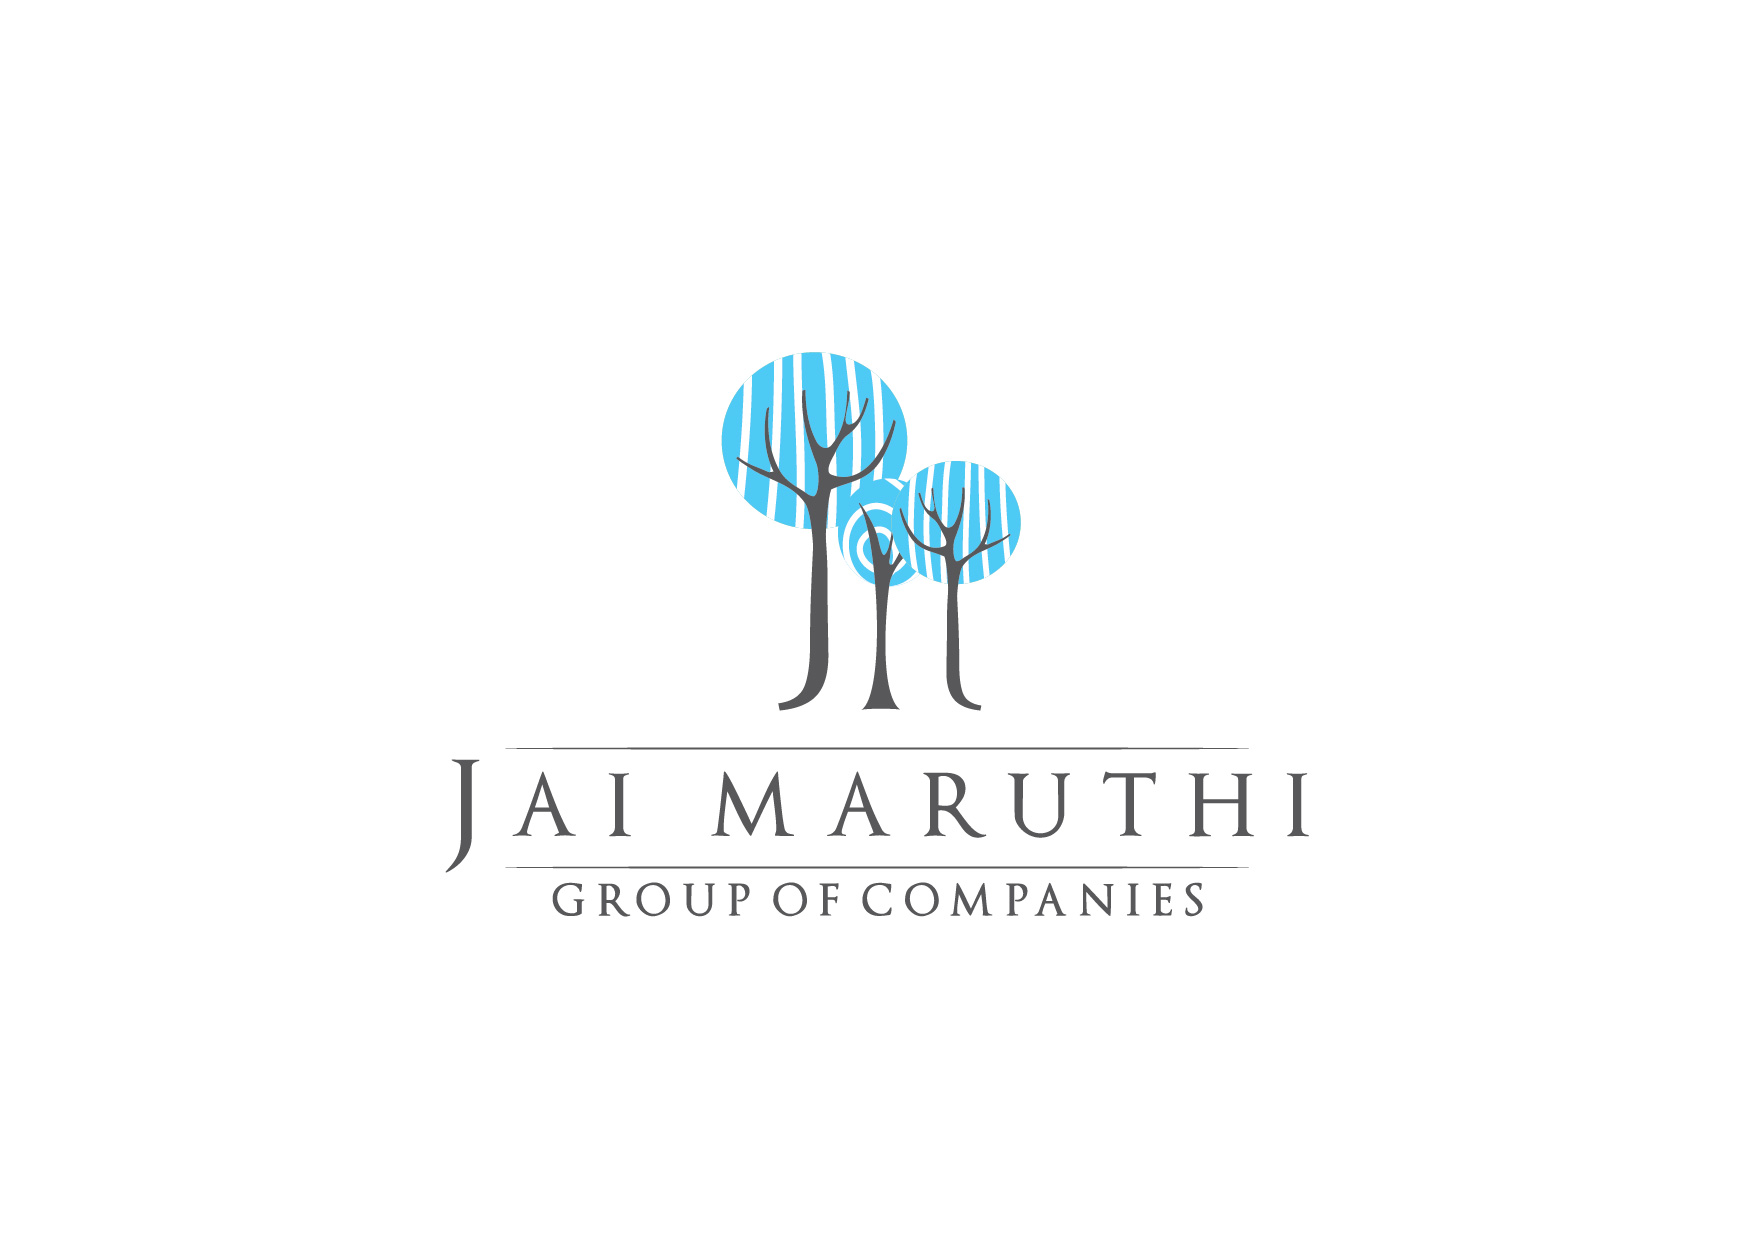 JAI MARUTHI INDUSTRIES